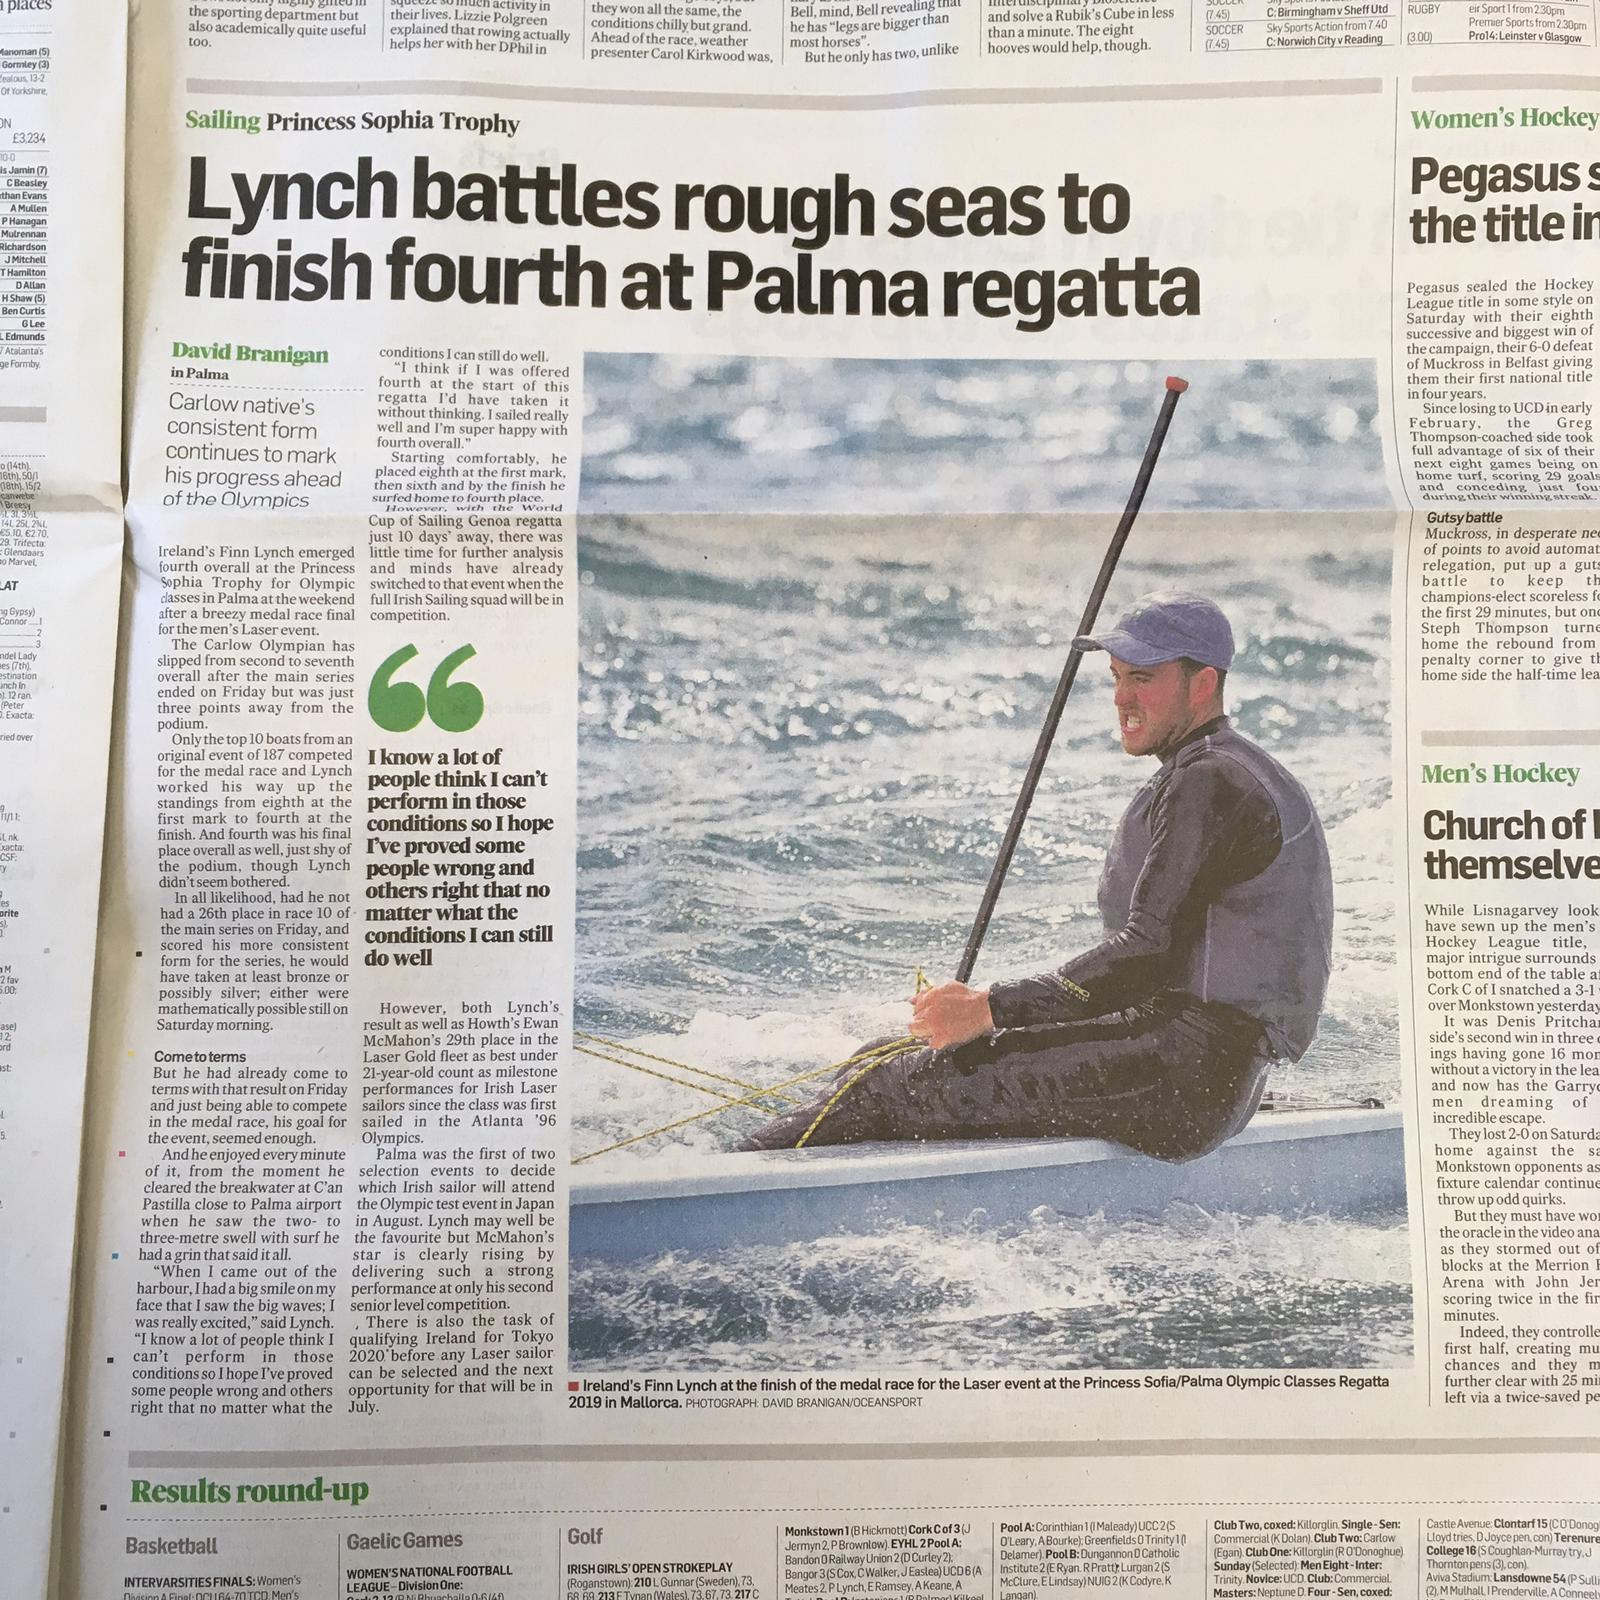 Description image of Finn Lynch Takes Fourth Place in the Princes Sophia Trophy